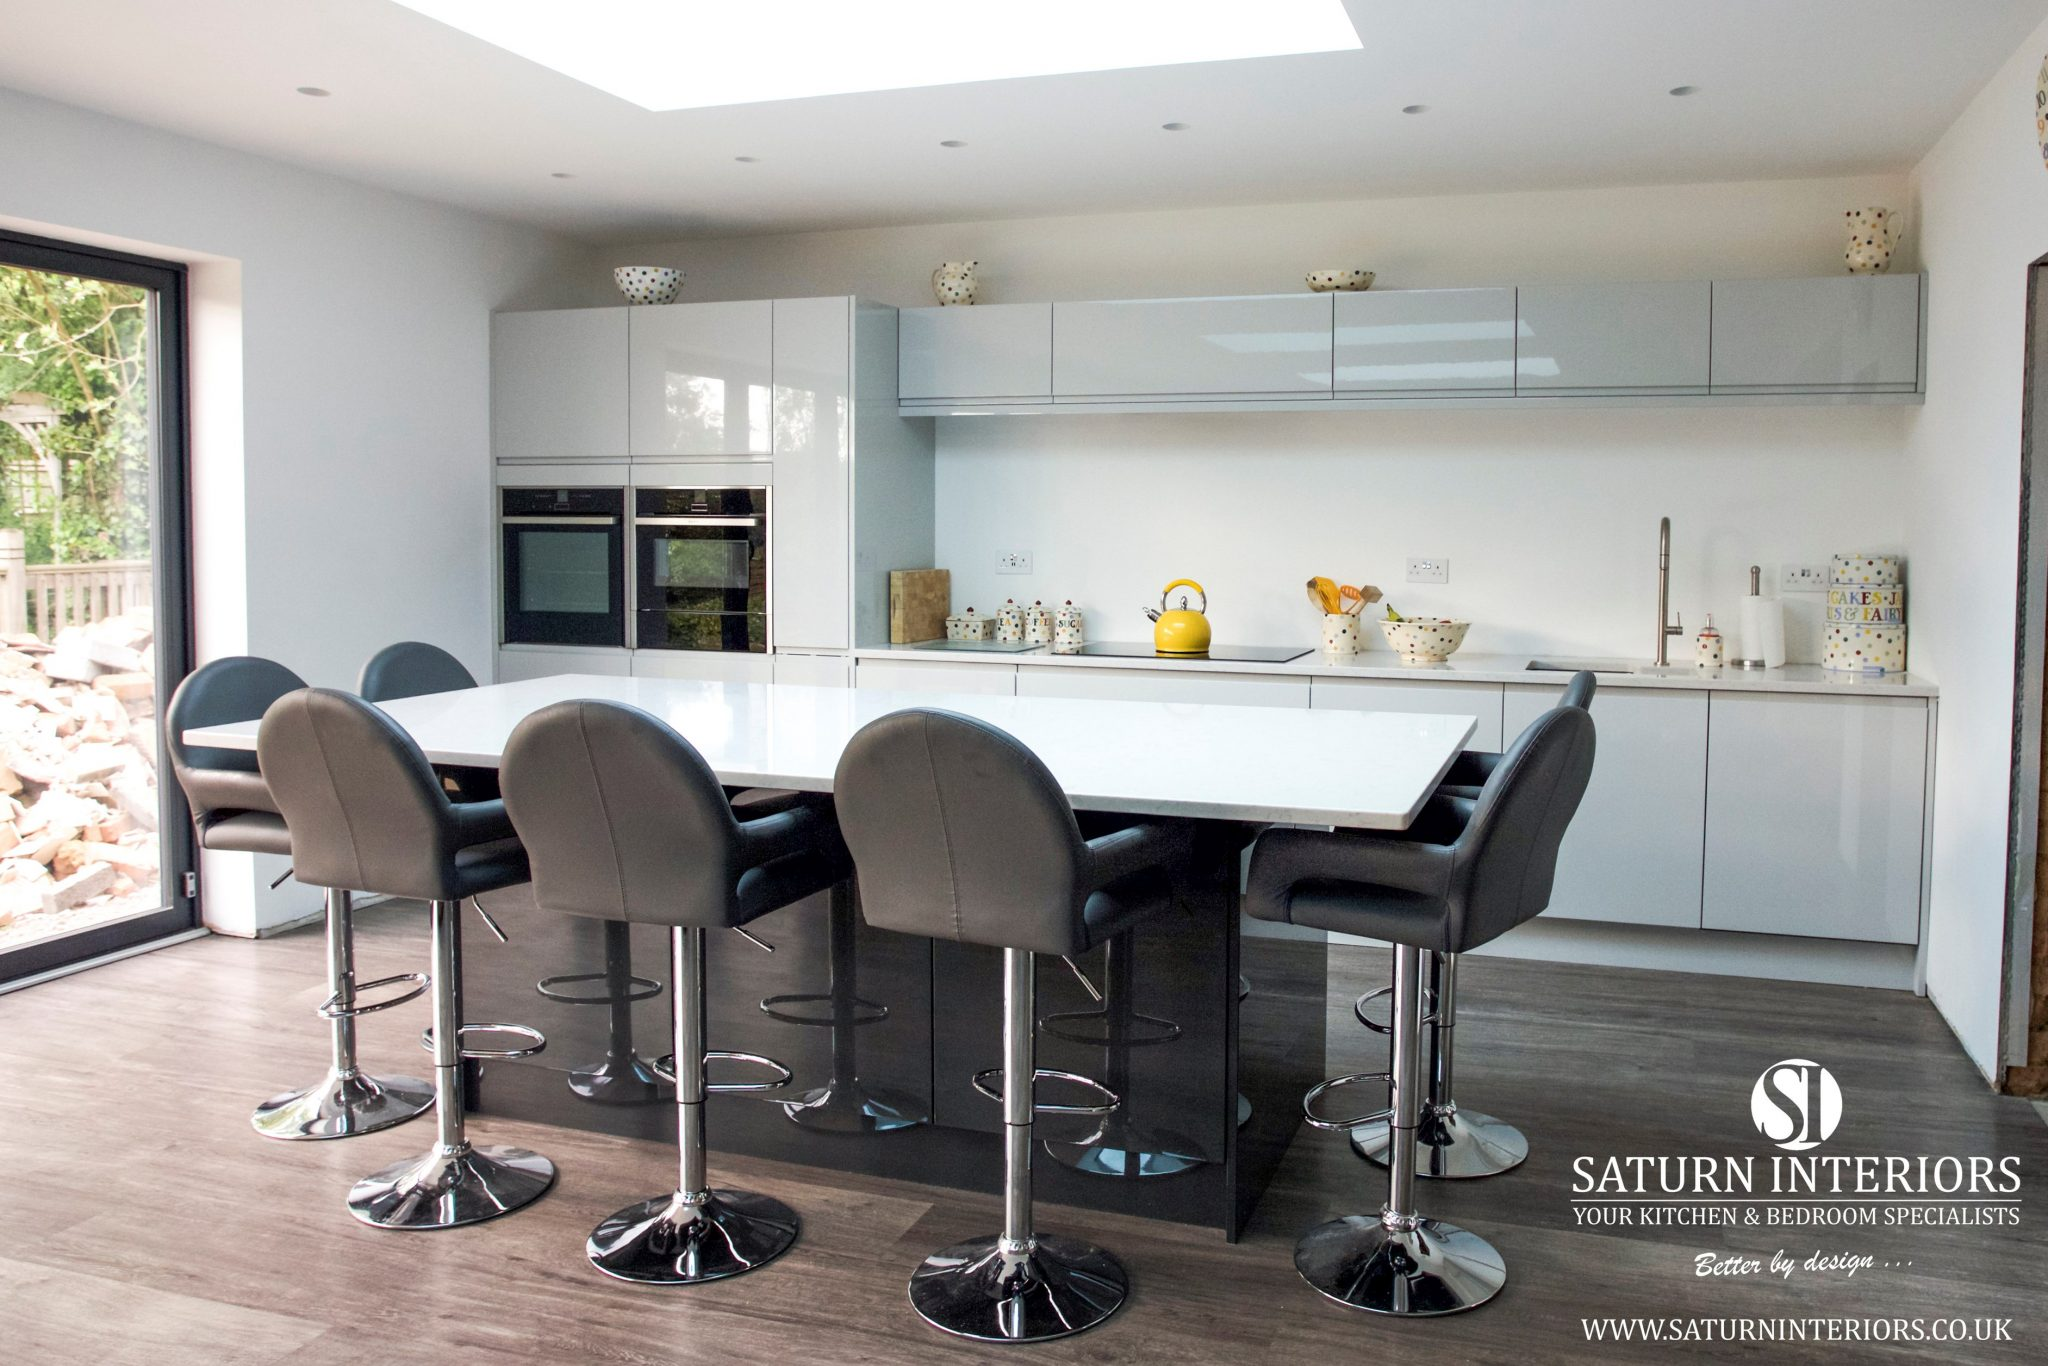 Finished Kitchen in Wootton from Saturn Interiors